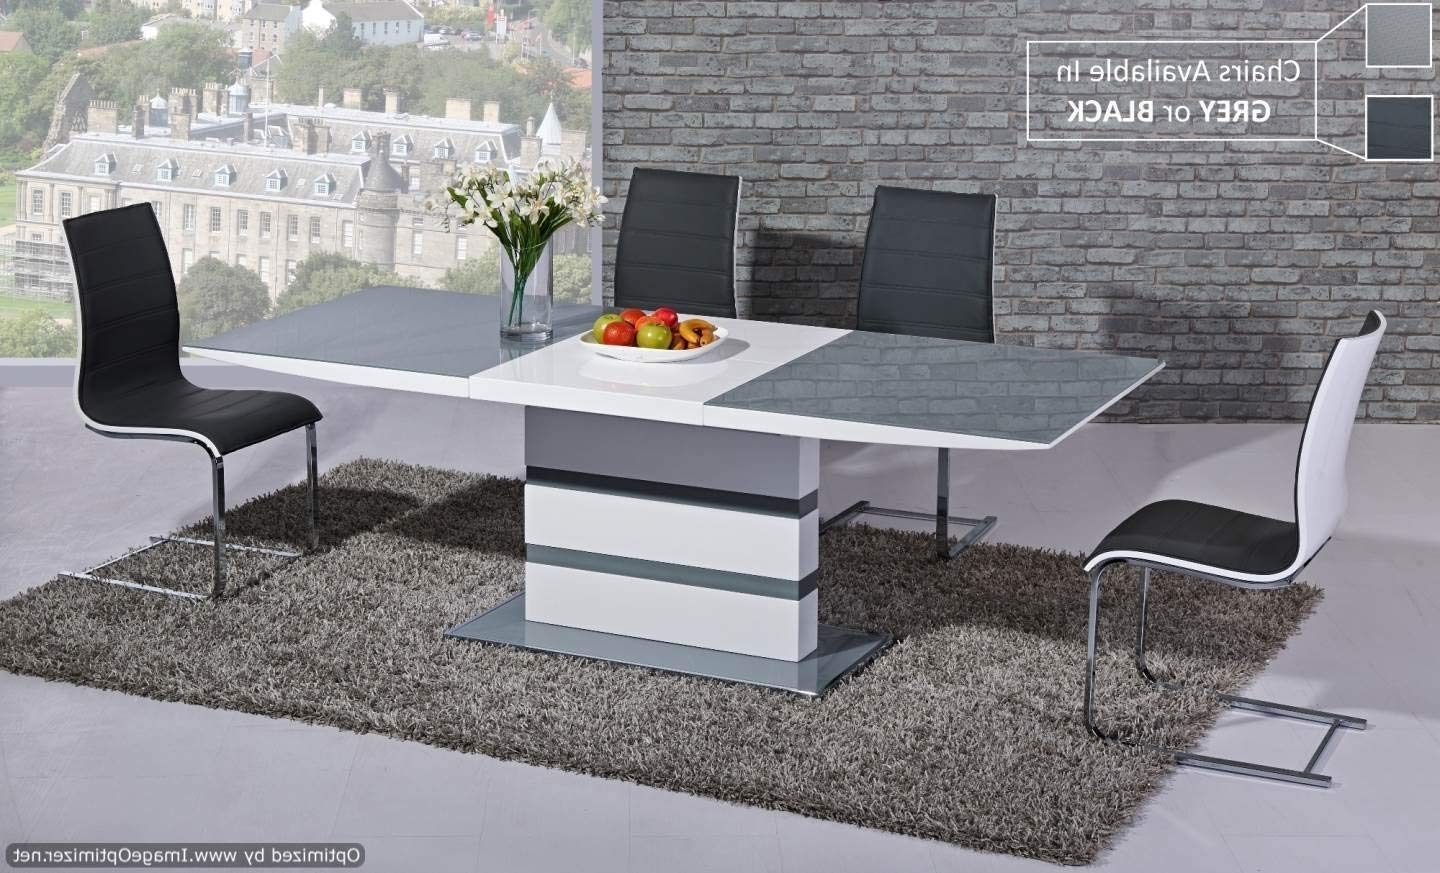 Widely Used Cheap White High Gloss Dining Tables In Furniture Mill Outlet Arctic Extending Dining Table In Grey From Giatalia –  Extending Function – Very Stylish & Contemporary Italian Dining (View 25 of 25)